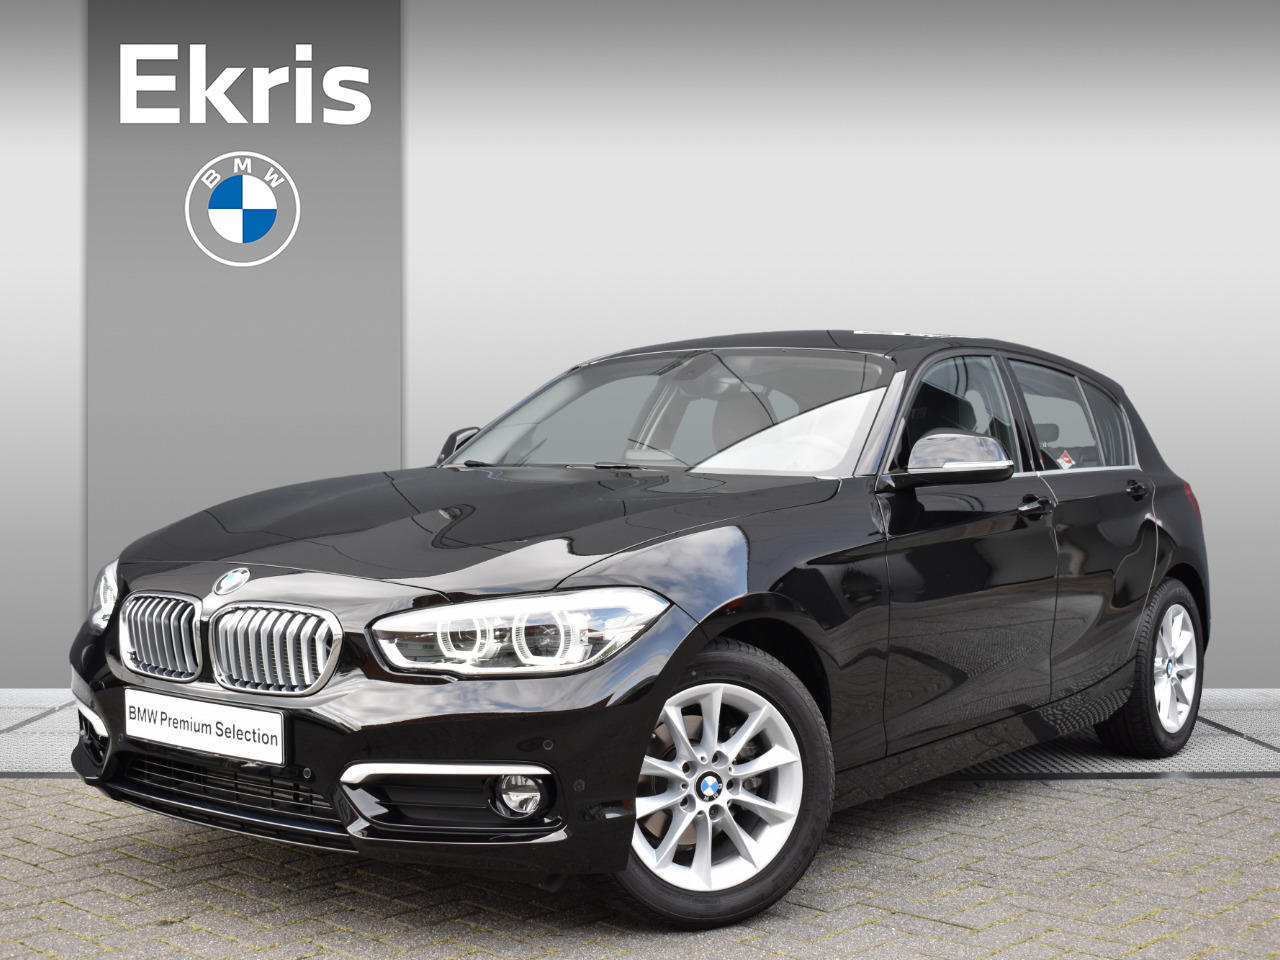 Bmw 1 serie 116i 5-deurs corporate lease executive urban line, stoelverwarming, parkeersensoren